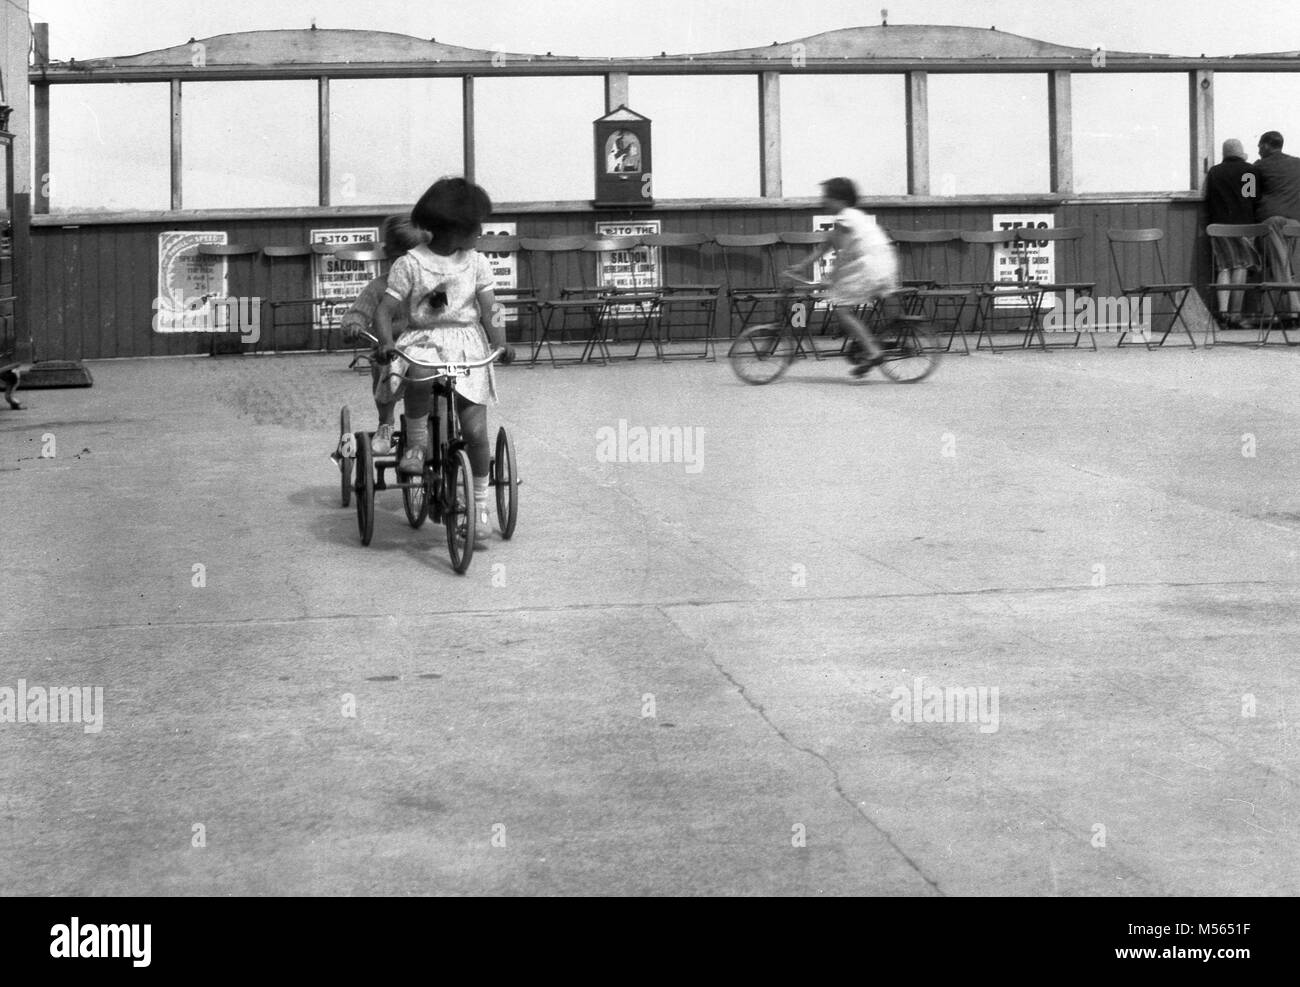 1930s, historical, childrern cycling outdoor in a special area on a seaside pier, England. - Stock Image